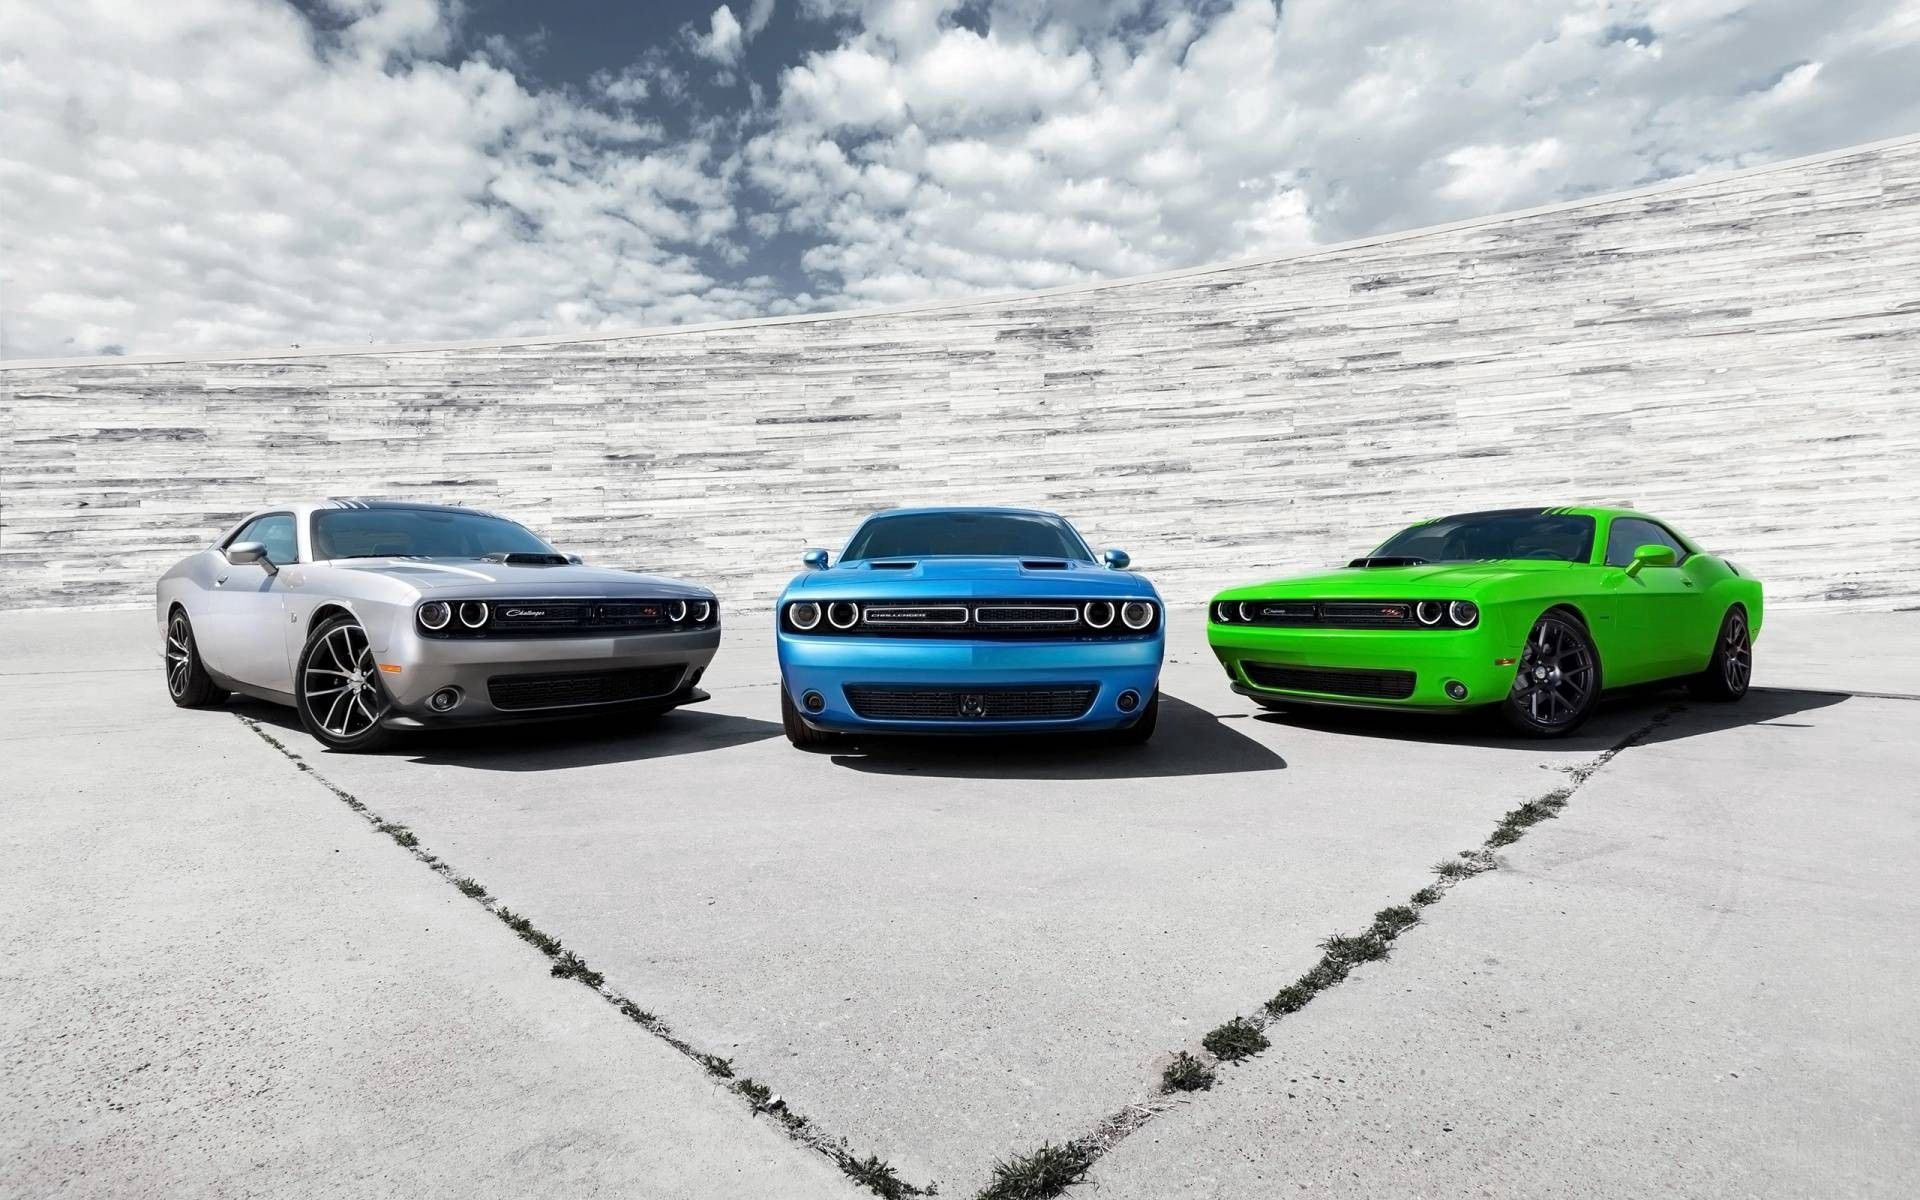 101312 download wallpaper Cars, 2015, Dodge, Challenger, Sports screensavers and pictures for free